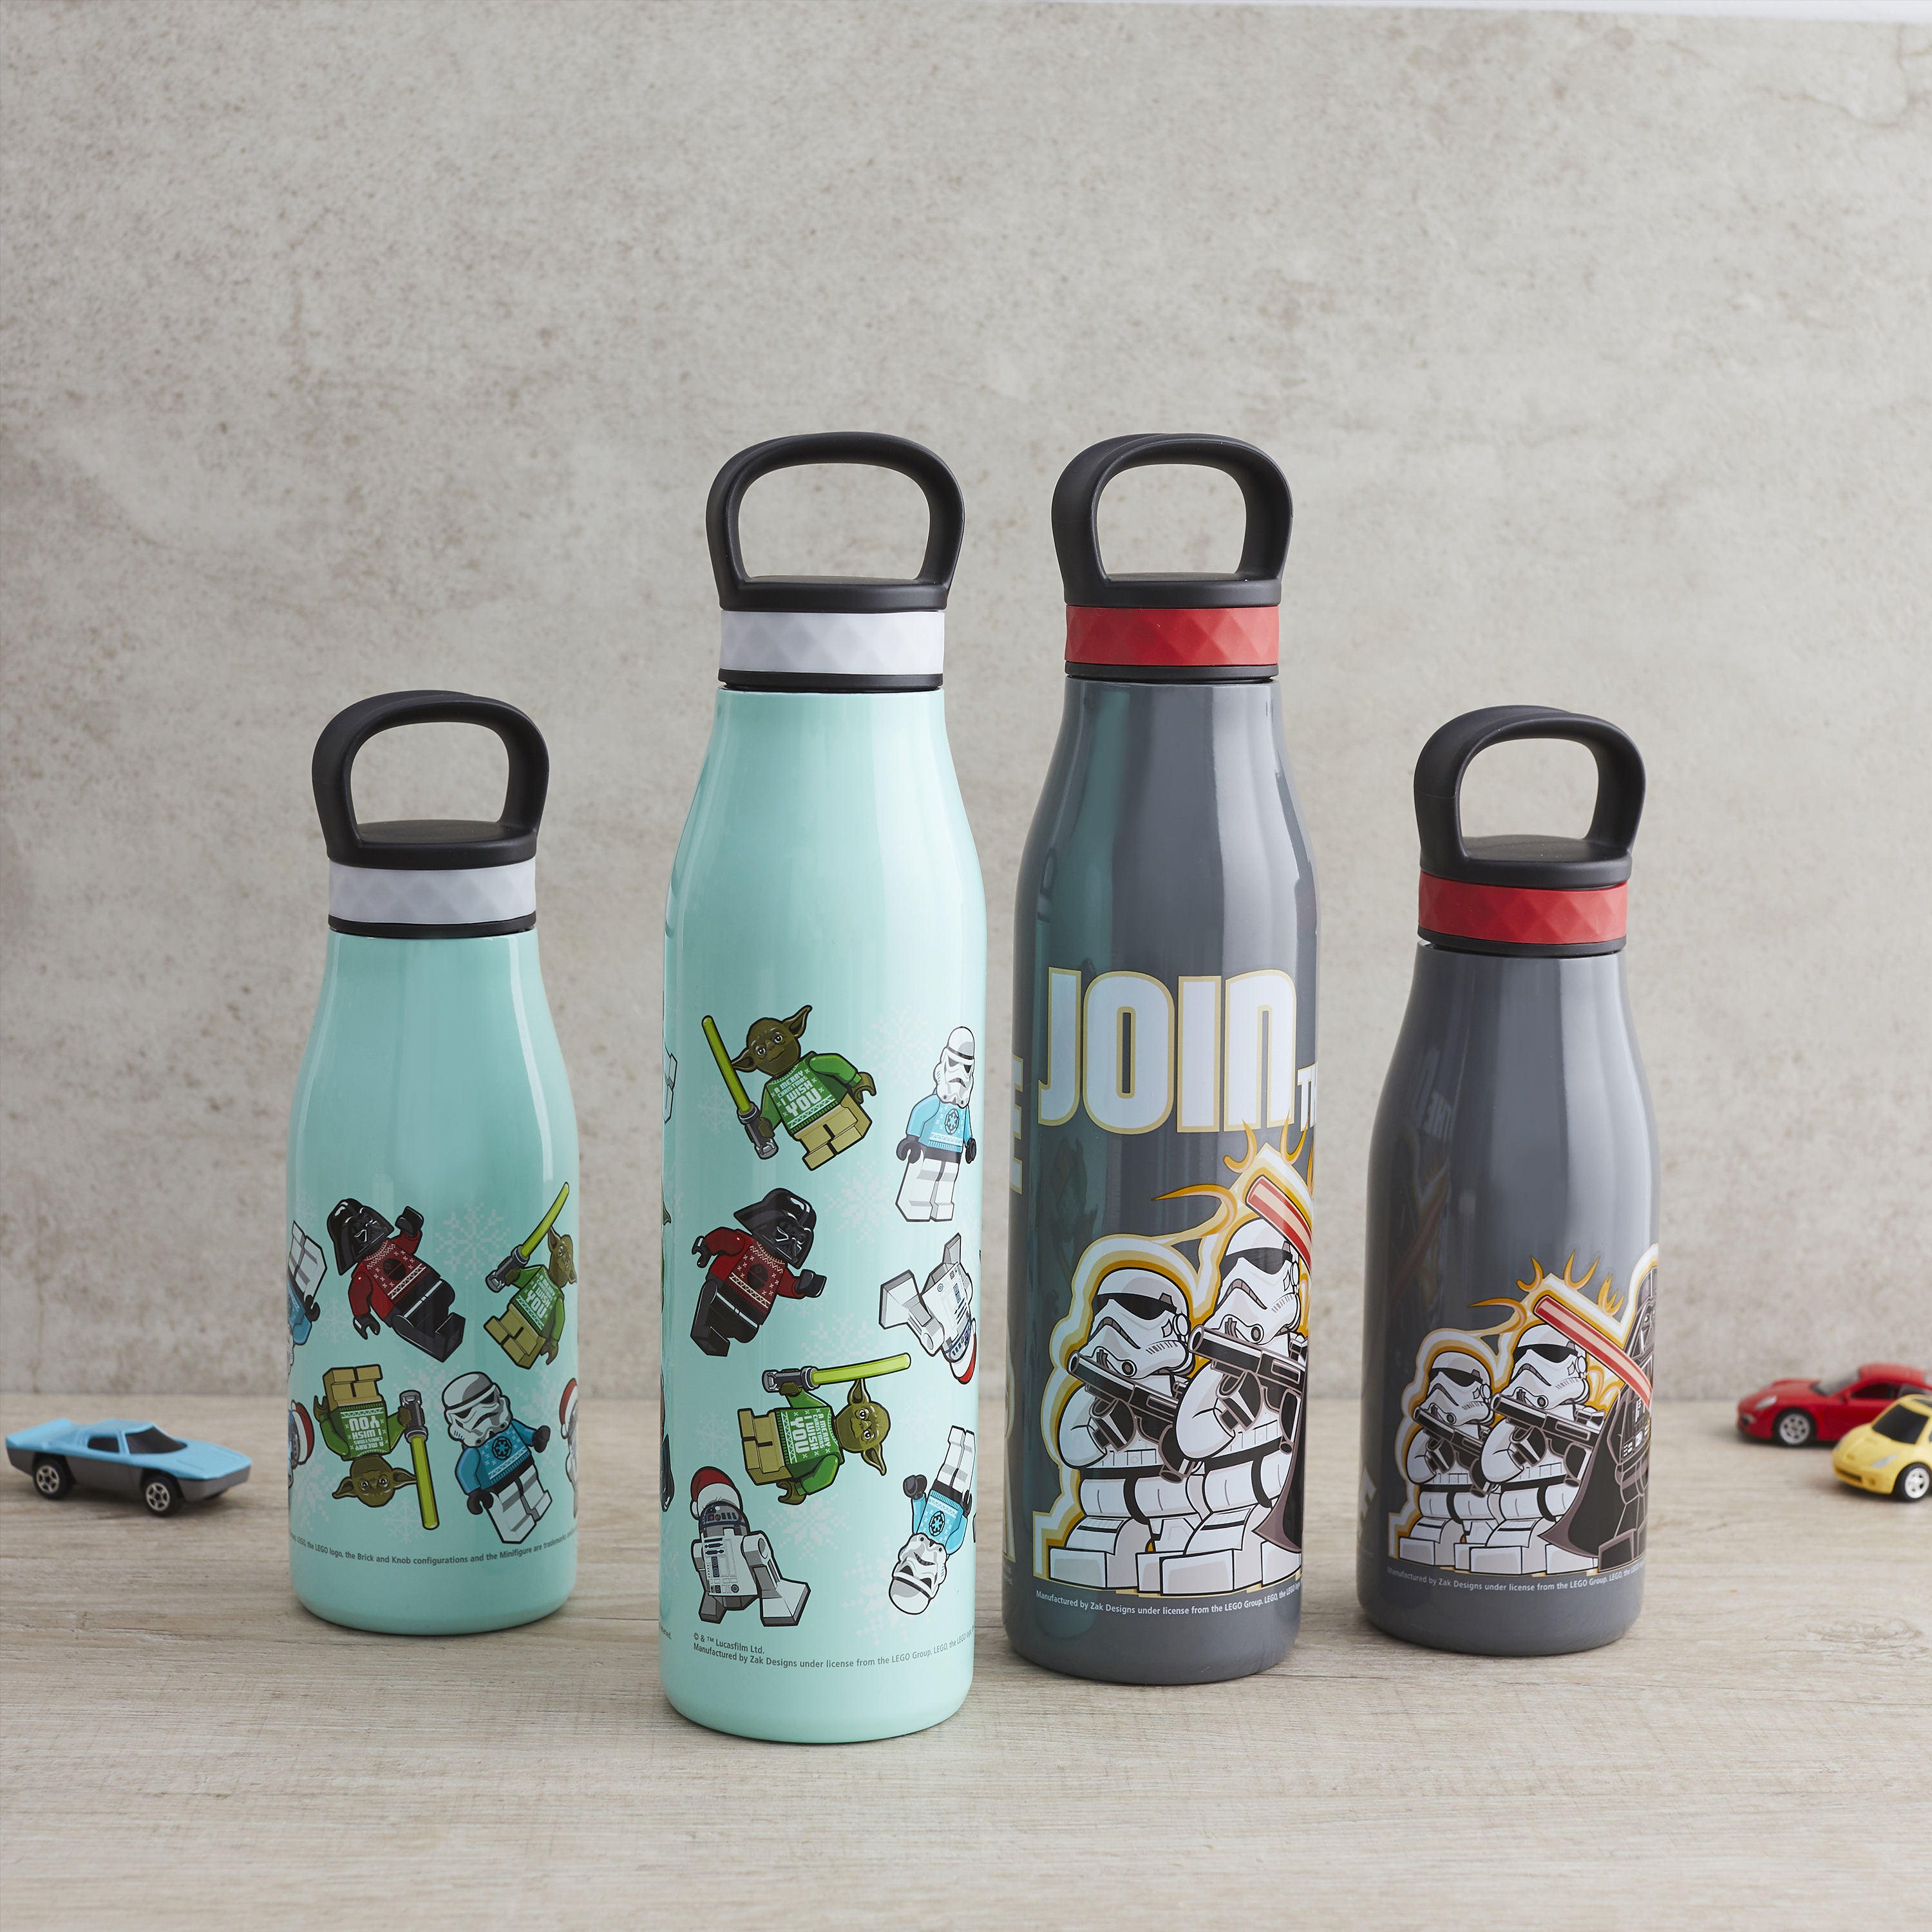 Lego Star Wars 20 ounce Stainless Steel Vacuum Insulated Water Bottle, R2-D2, Yoda and Darth Vader slideshow image 2